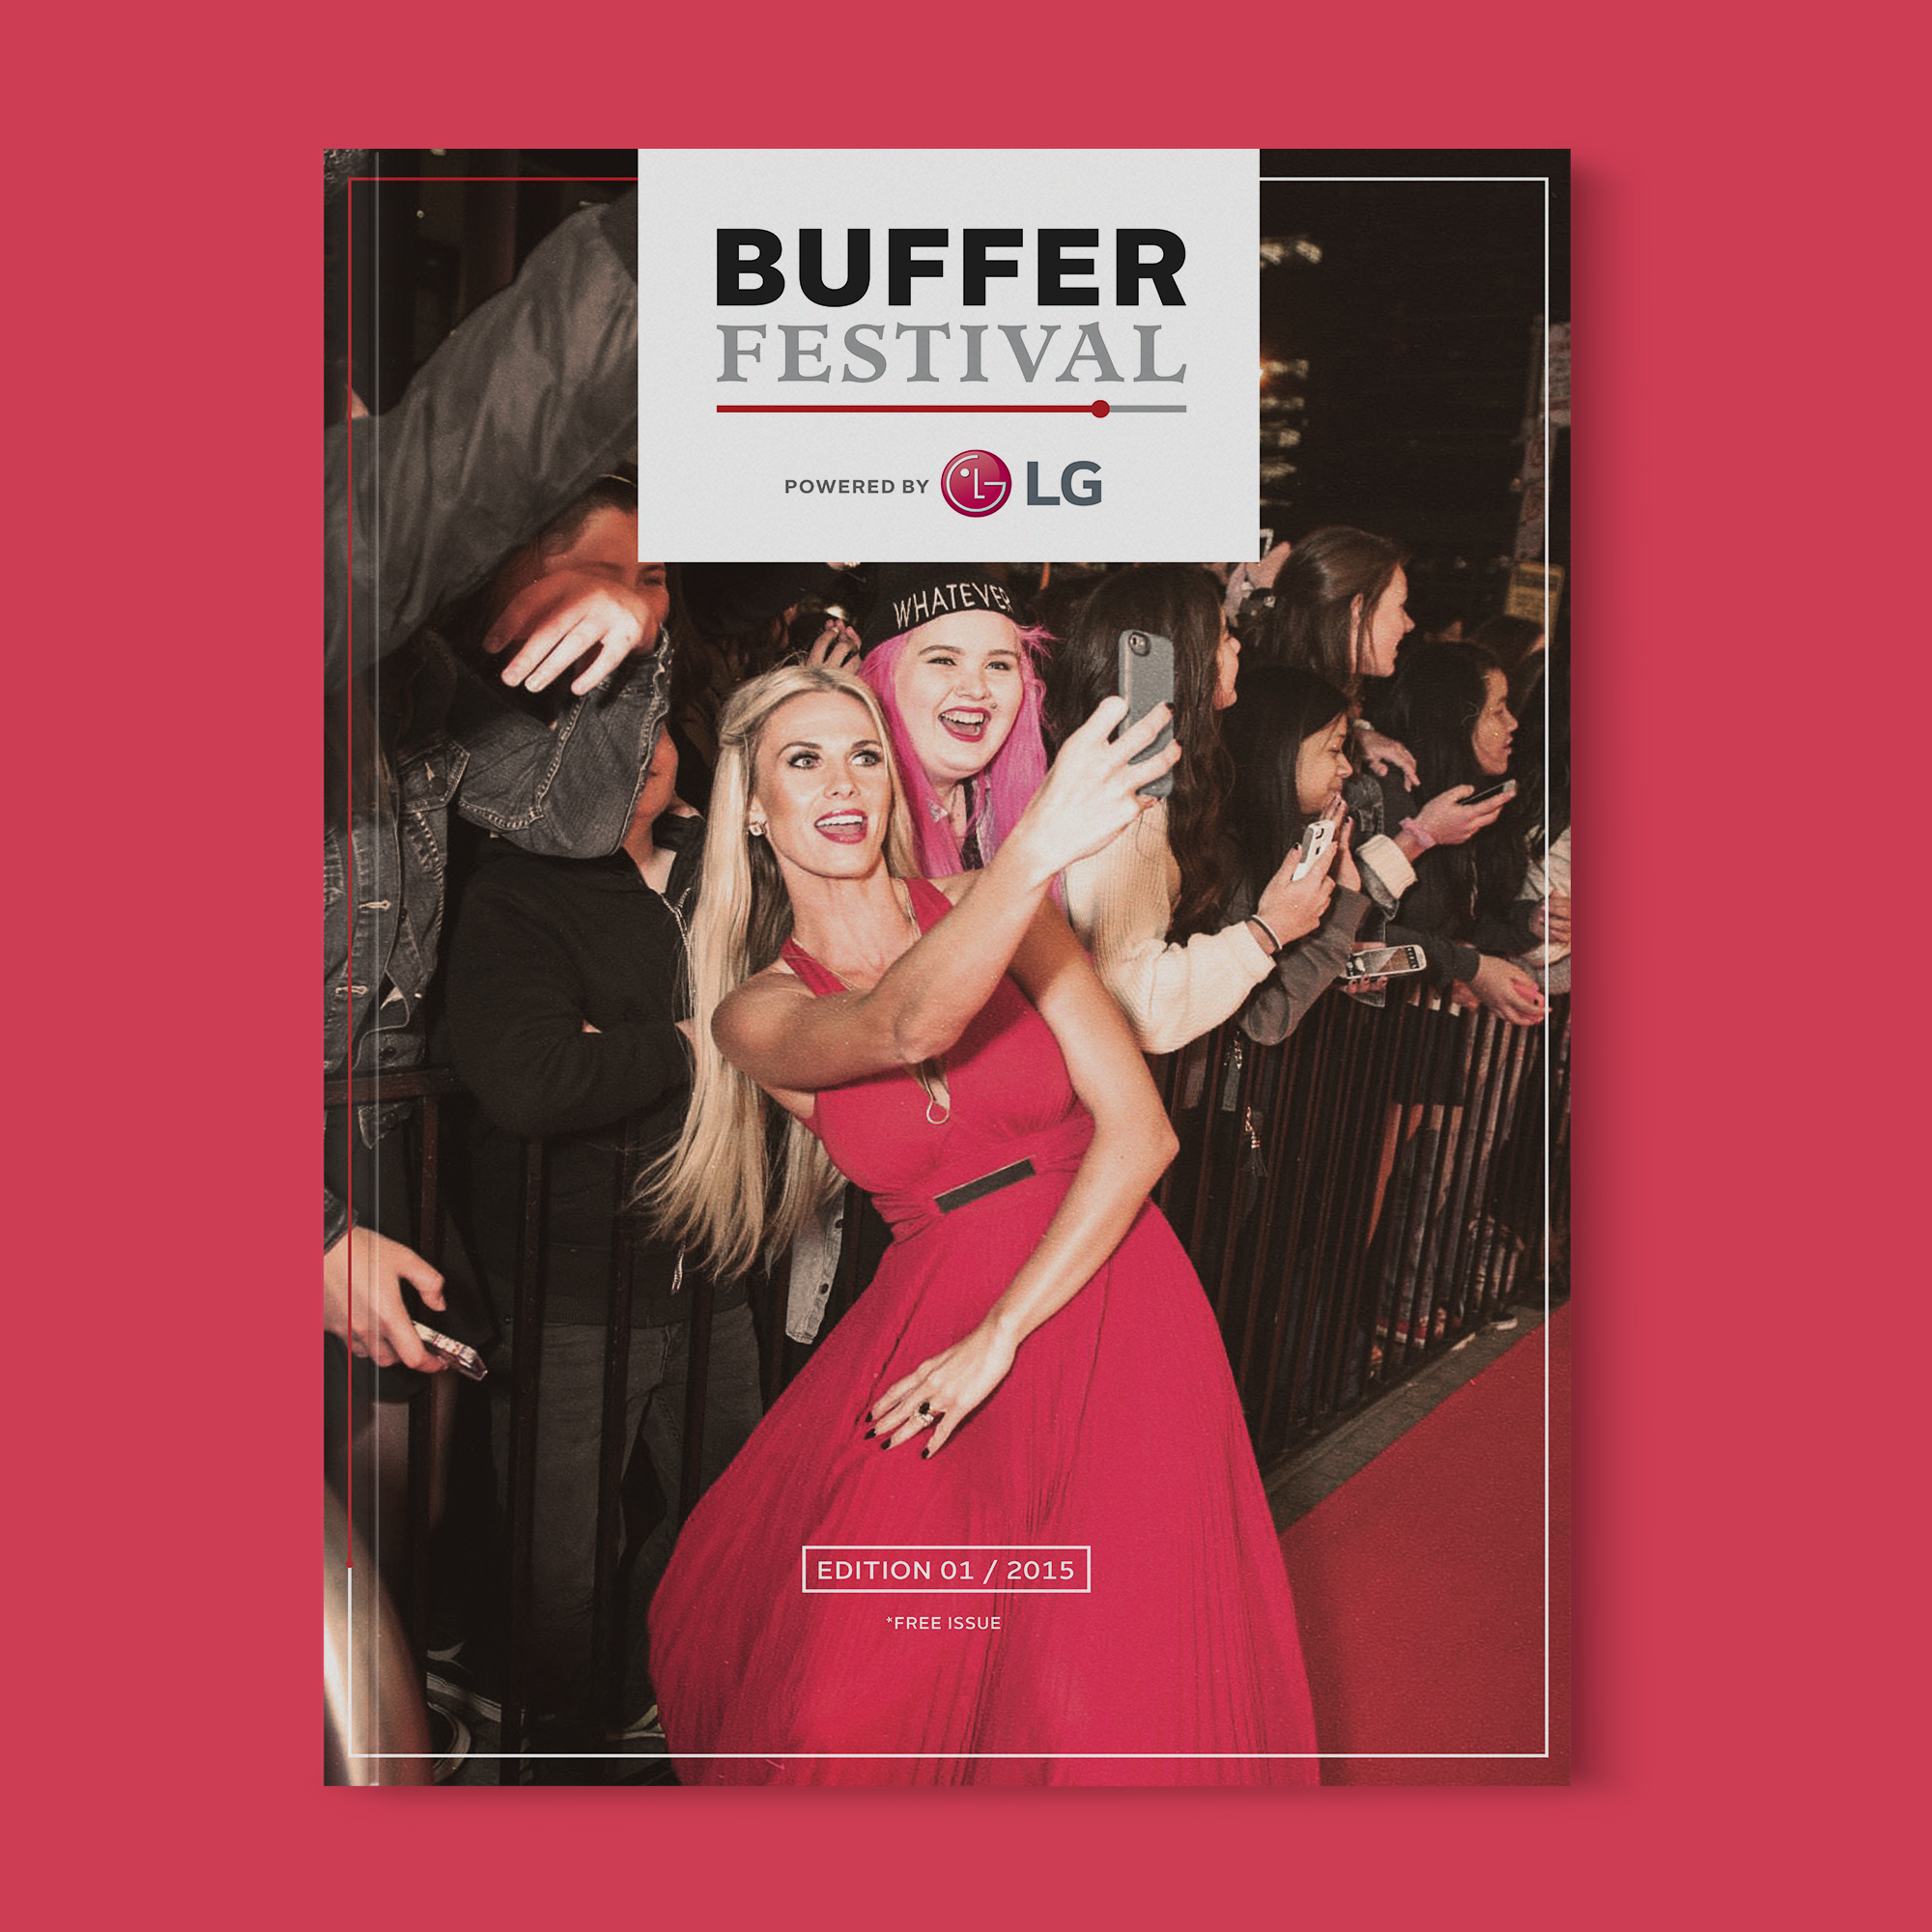 BufferFestival_Cover_1.png